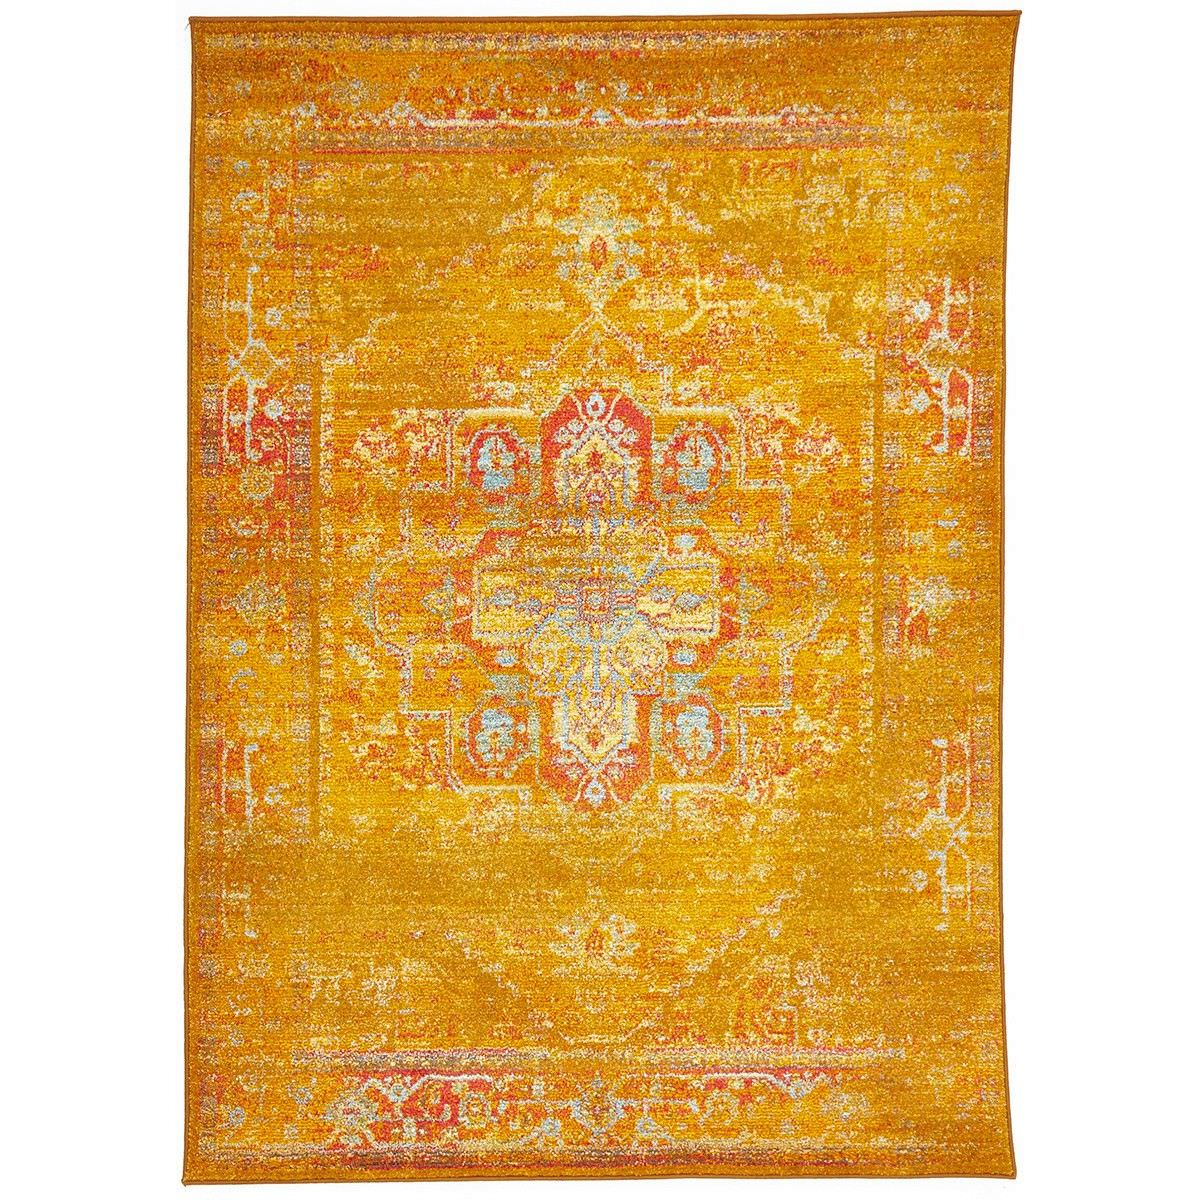 Kal Classic Egyptian Made Overdyed Oriental Rug, 330x240cm, Gold